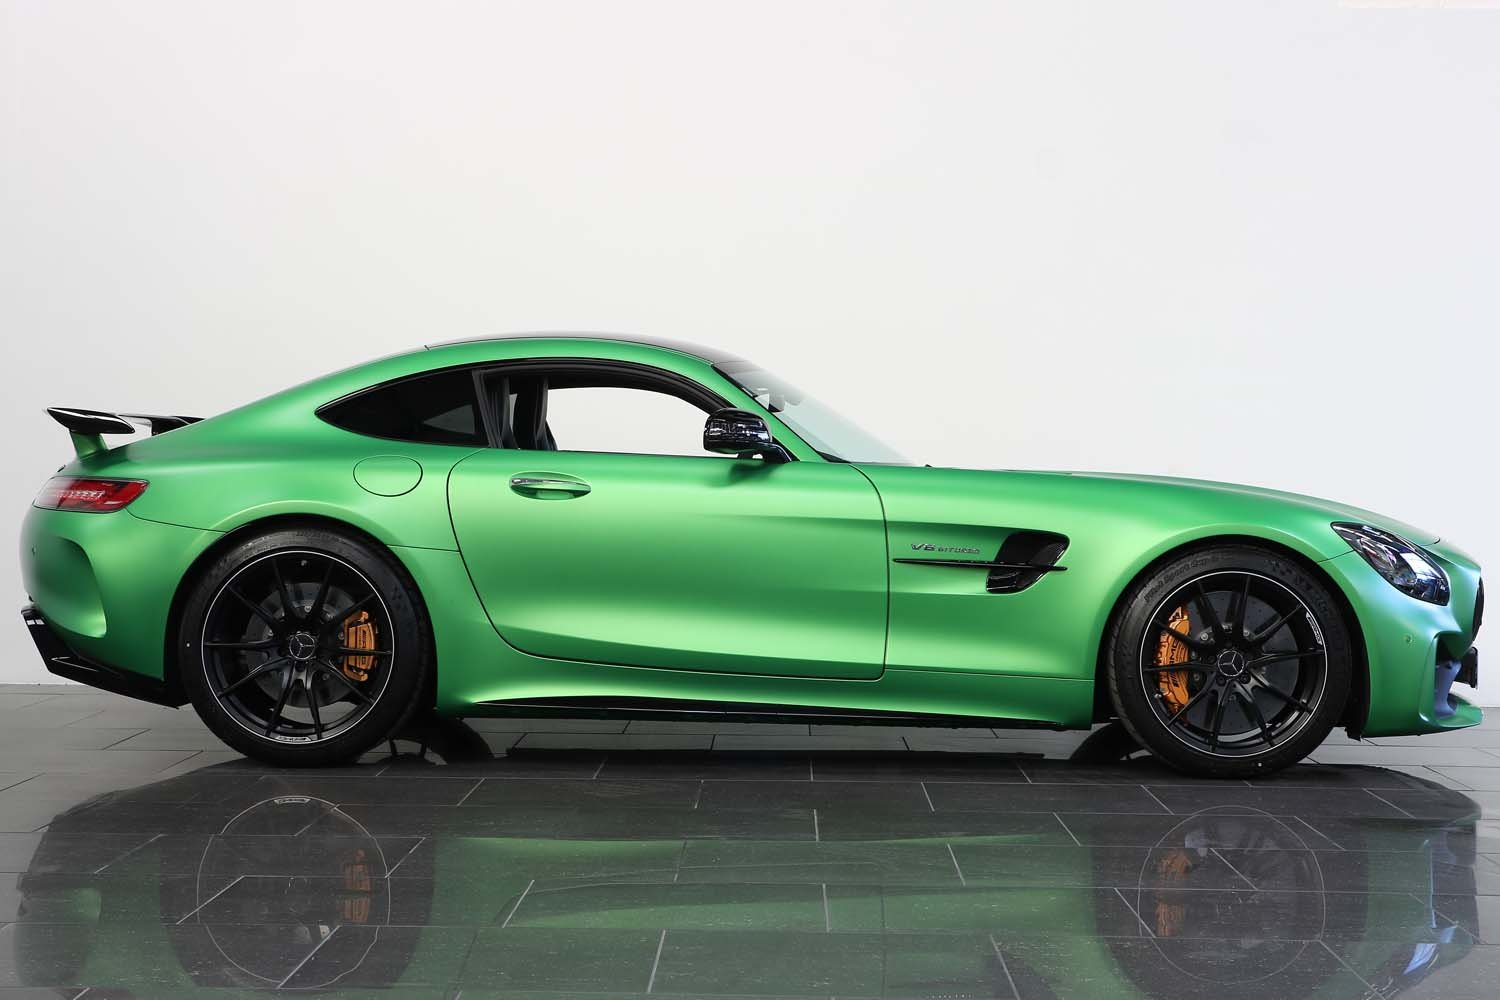 2019 19 MERCEDES BENZ AMG GT-R AUTO  For Sale (picture 2 of 6)